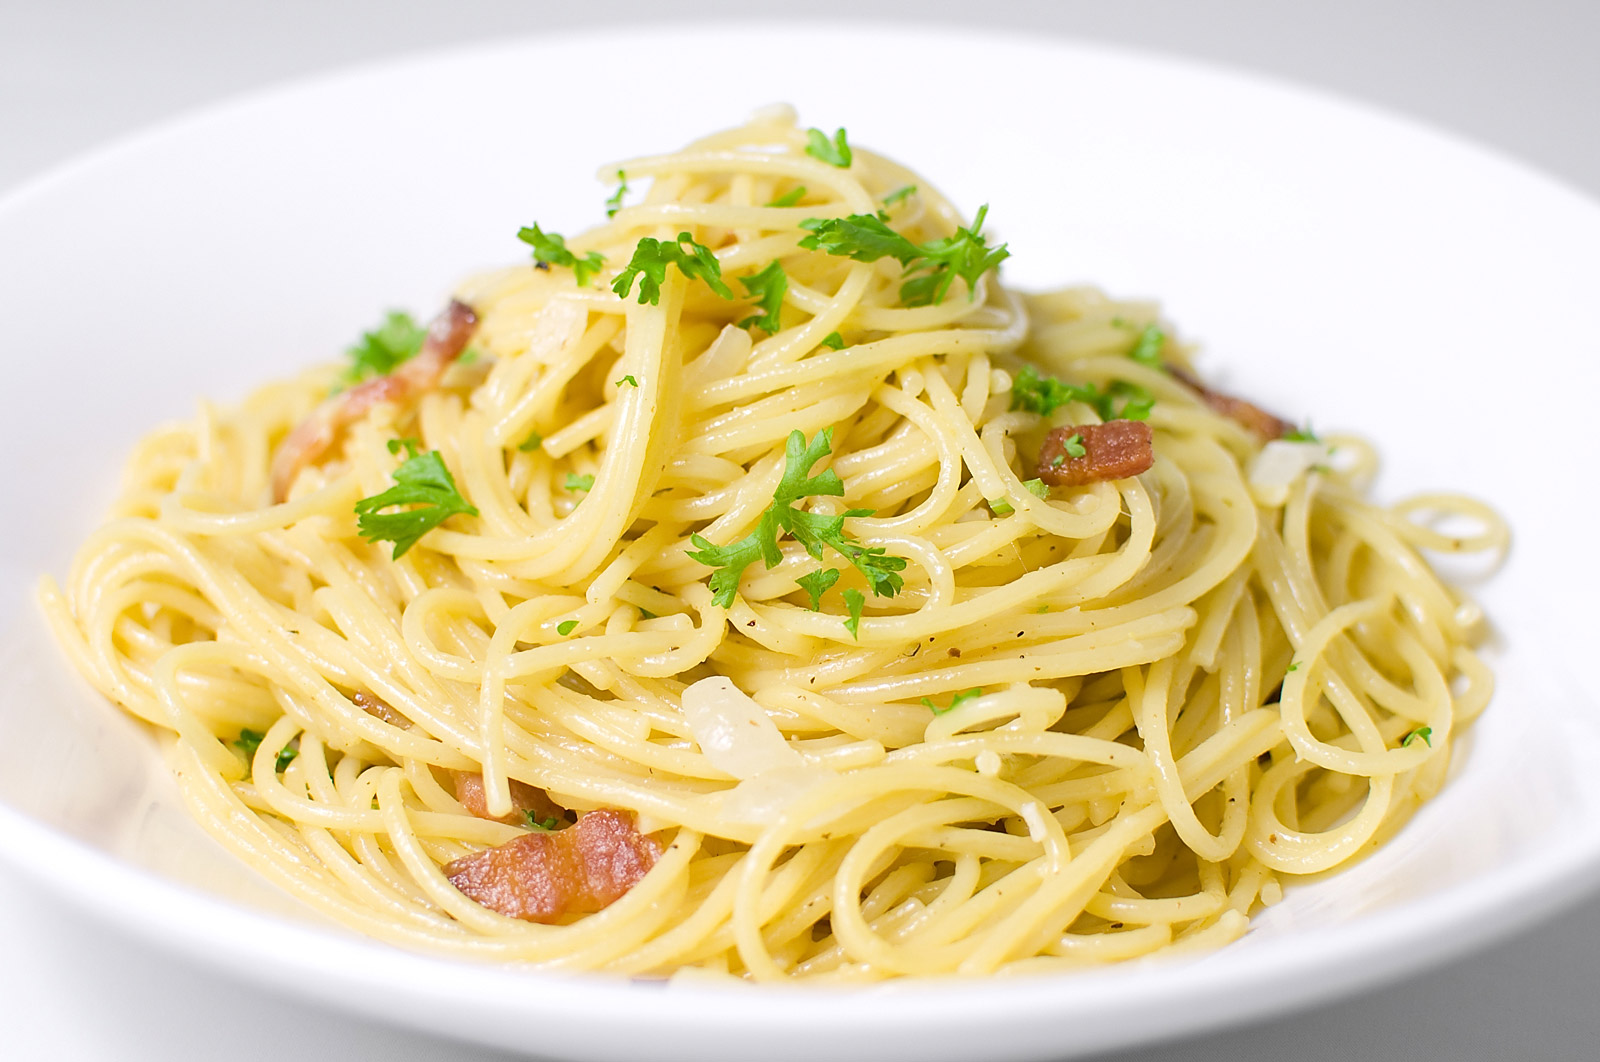 Carbonara | Free Images at Clker.com - vector clip art ...